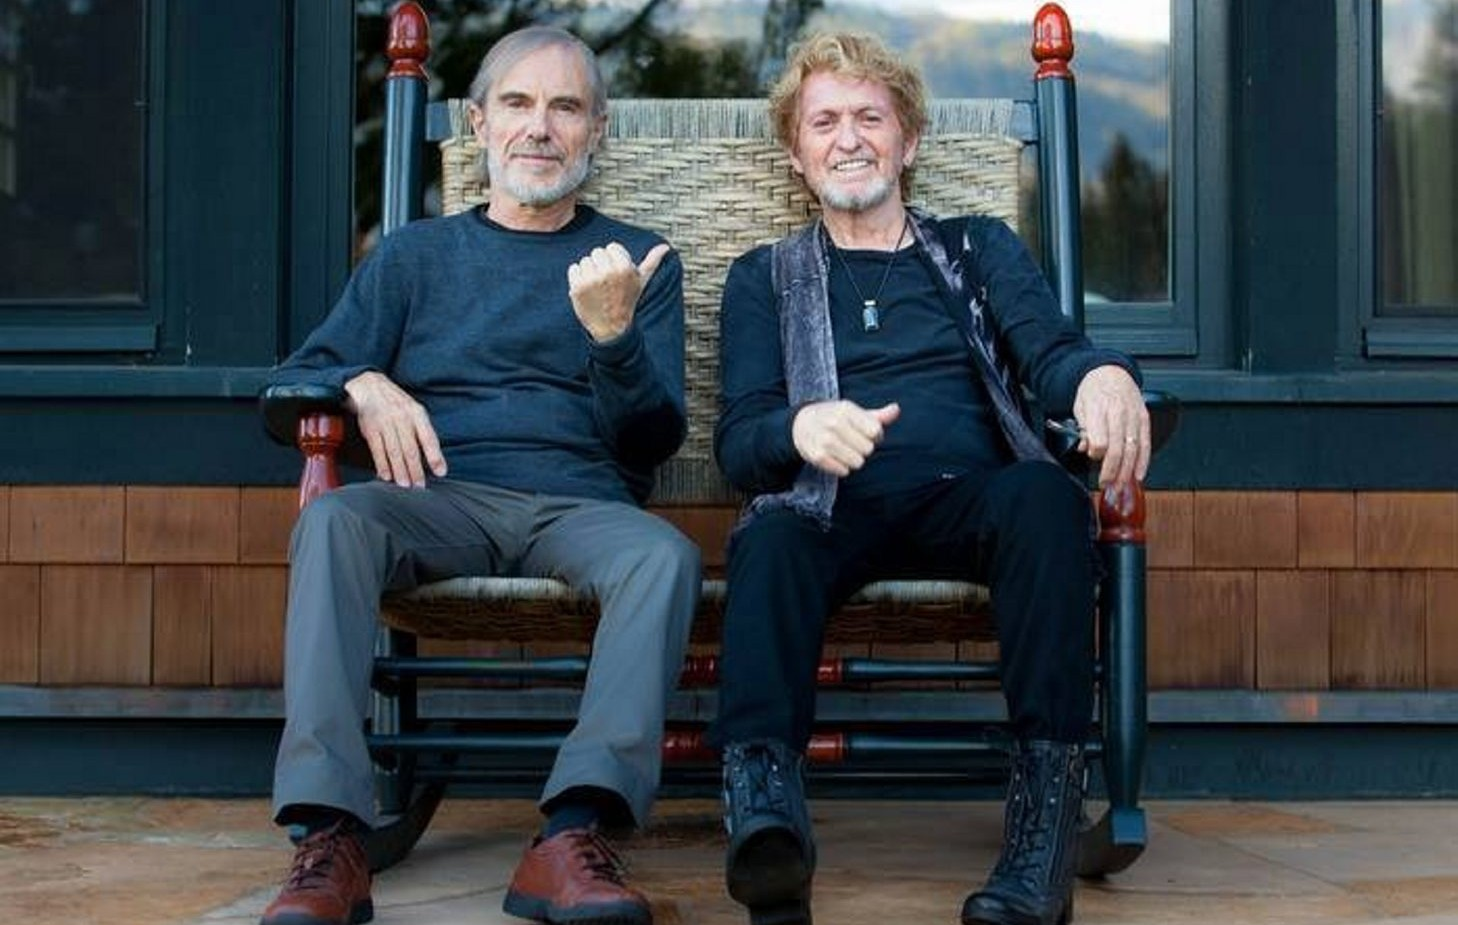 Jean Luc Ponty (left) and Jon Anderson (right) will bring their Anderson Ponty Band to the Riviera Theatre on May 17.